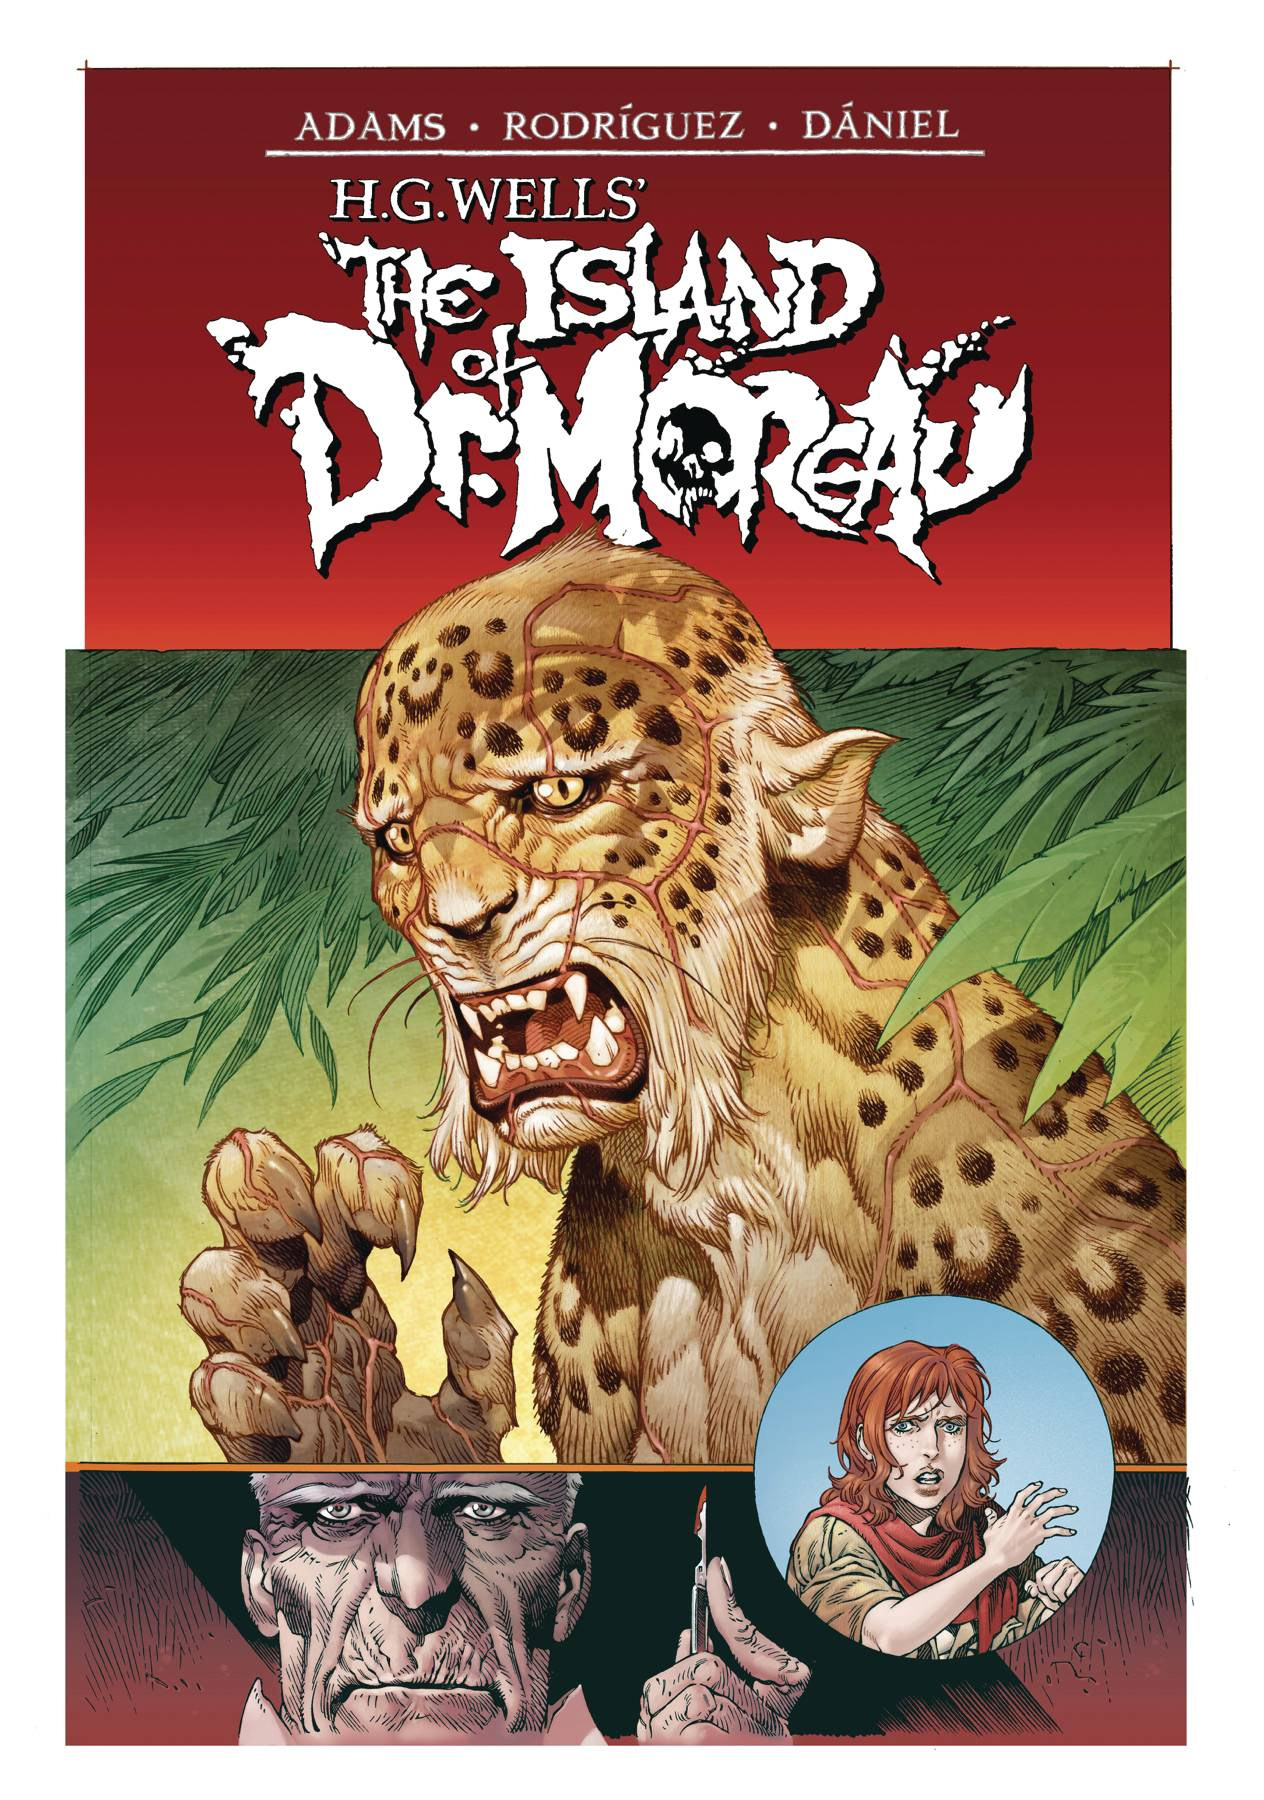 HG WELLS THE ISLAND OF DR MOREAU 1 of 2 CVR A RODRIGUEZ.jpg